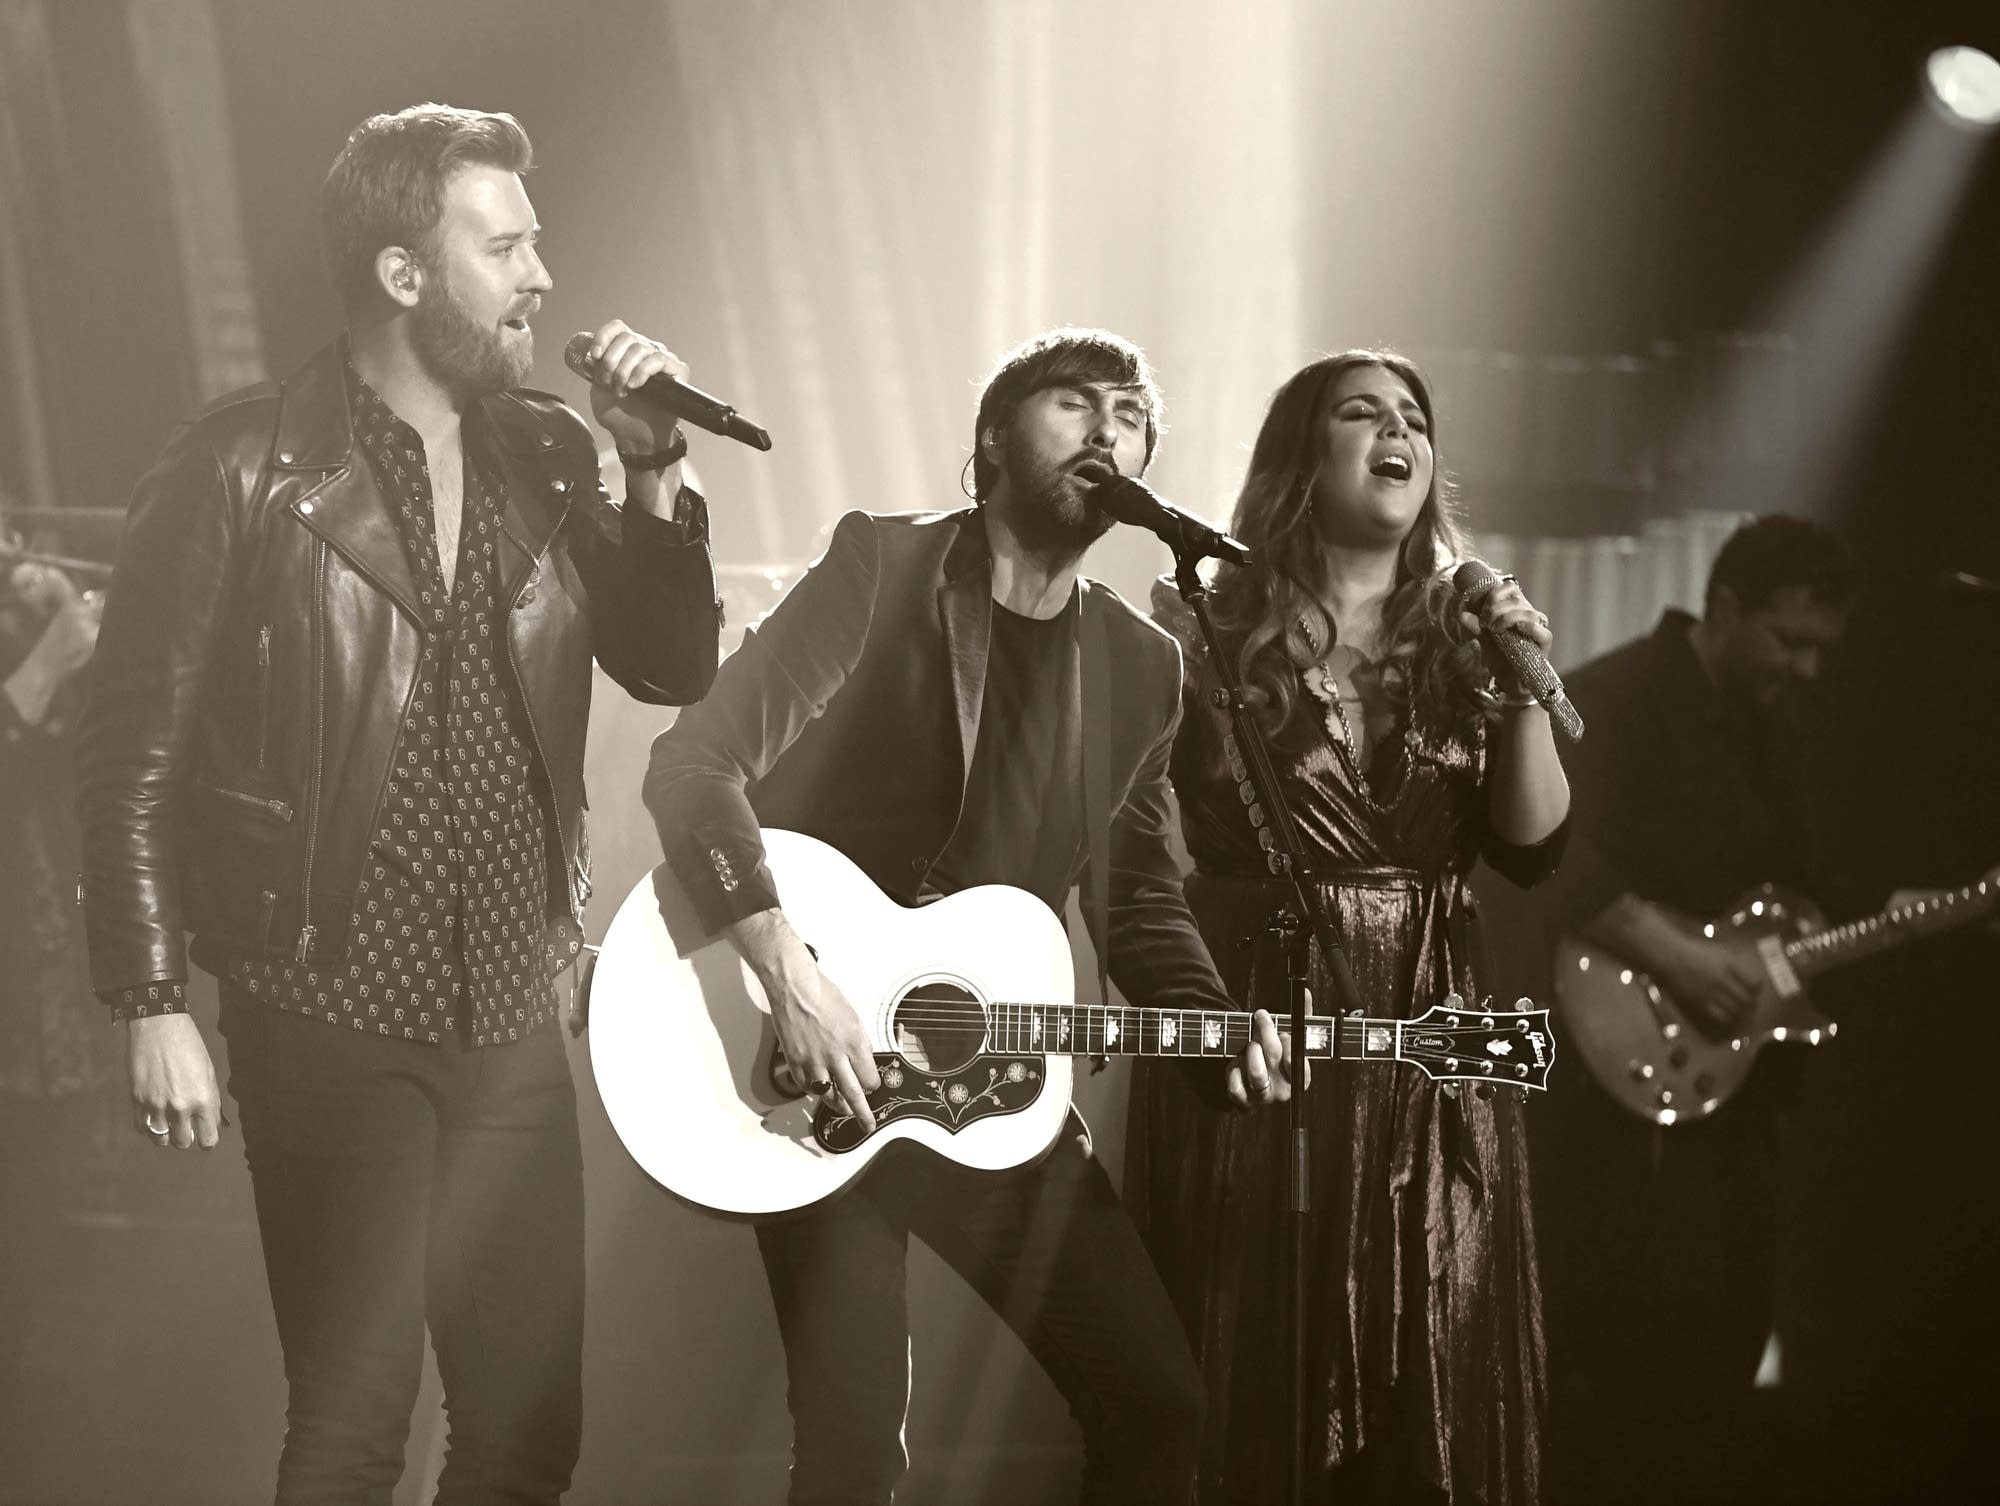 Lady Antebellum performs at The Pearl concert theater in Vegas